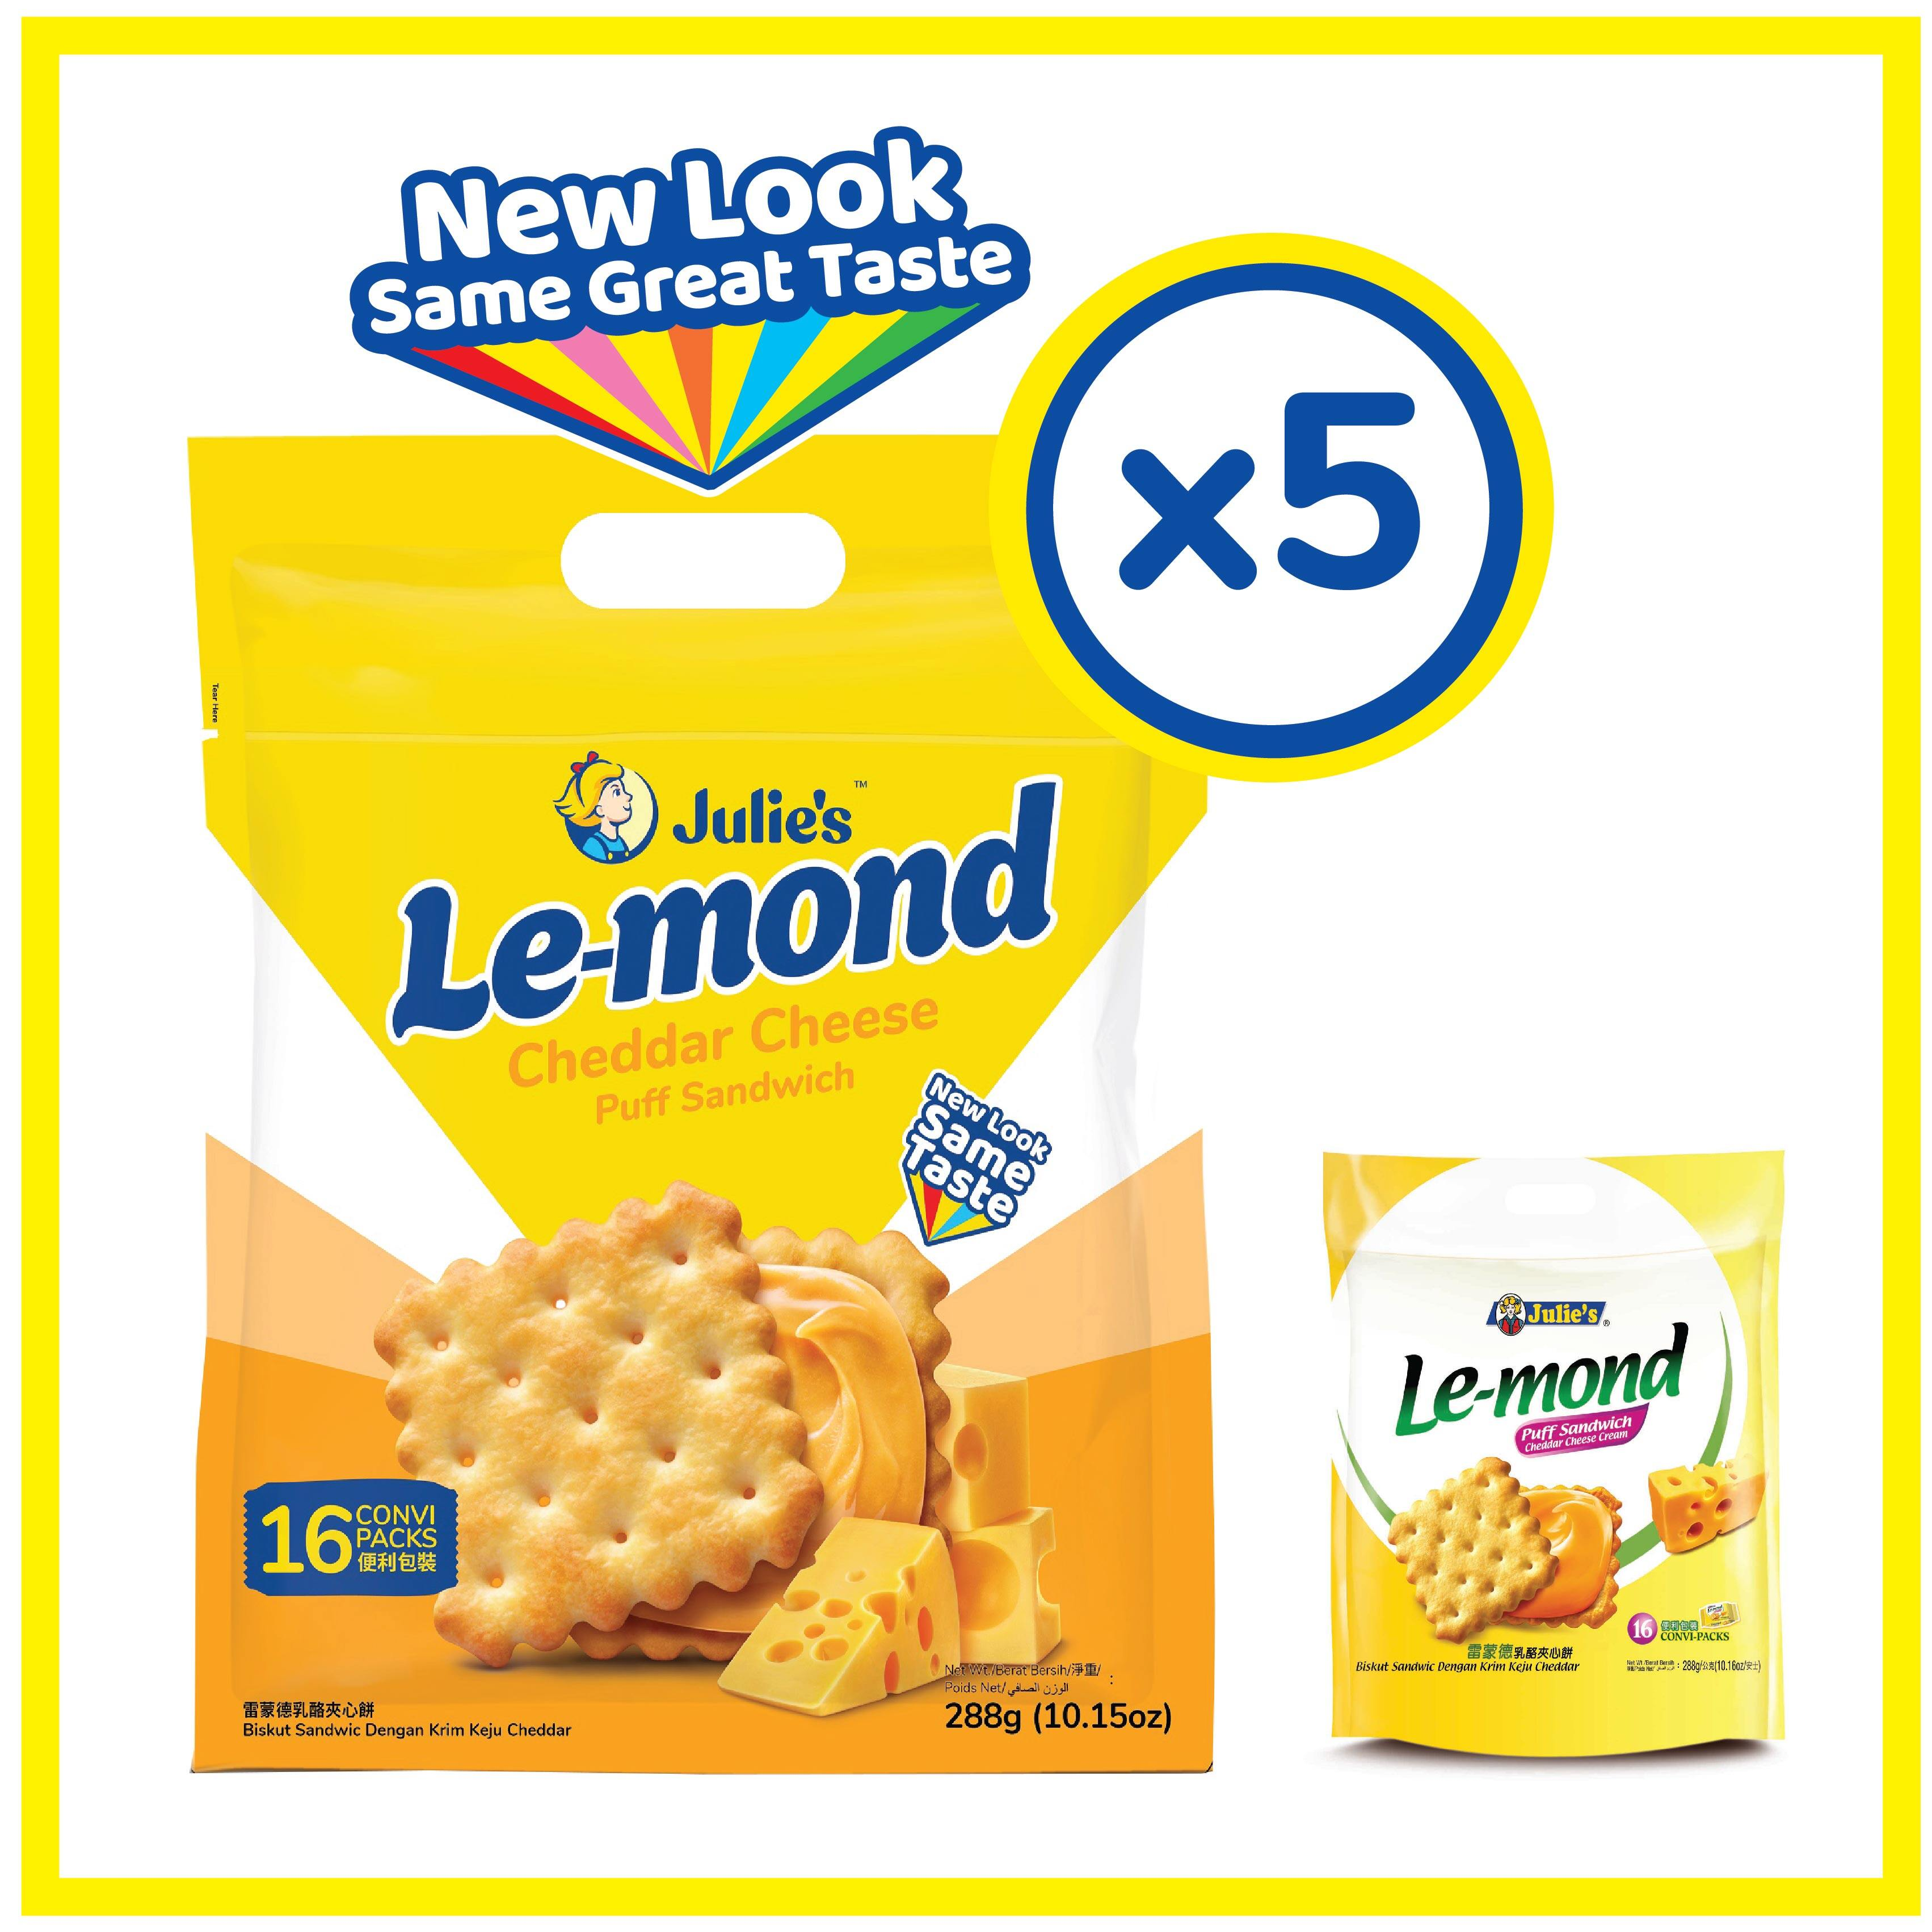 Julie's Le-mond Cheddar Cheese 288g x 5 pack